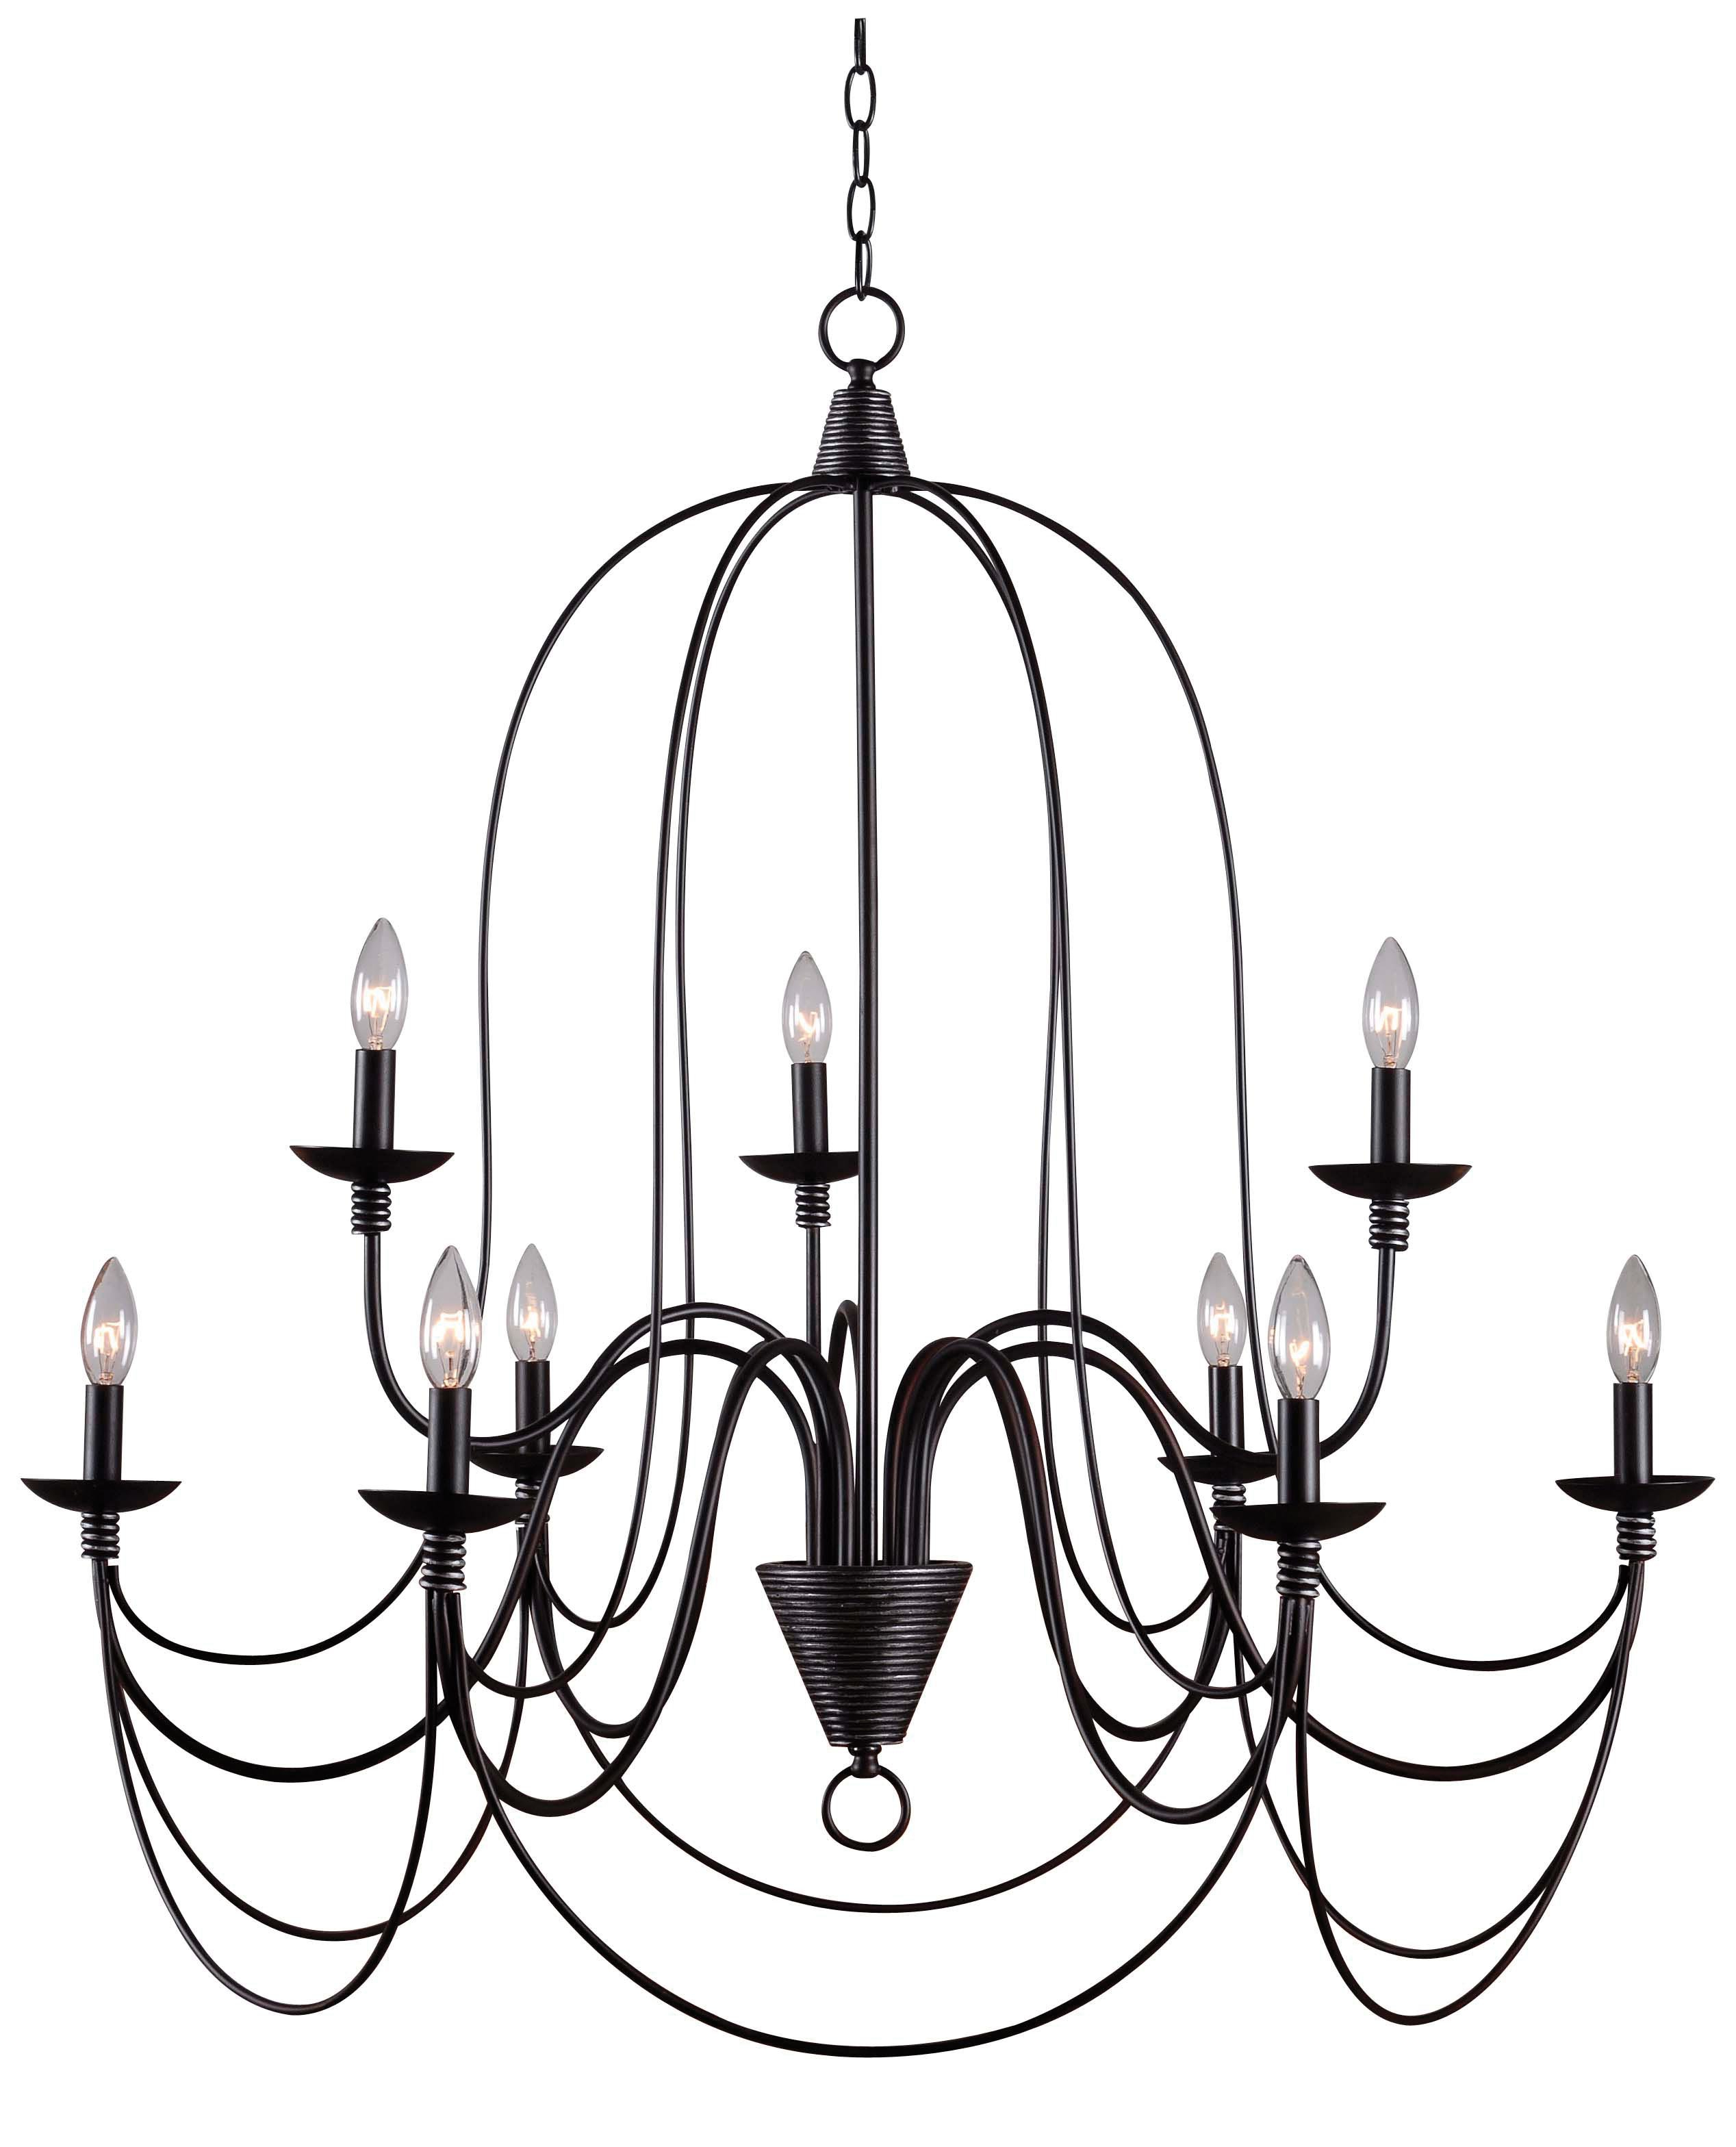 Current Gaines 9 Light Candle Style Chandeliers Pertaining To Kollman 9 Light Candle Style Chandelier (View 3 of 25)